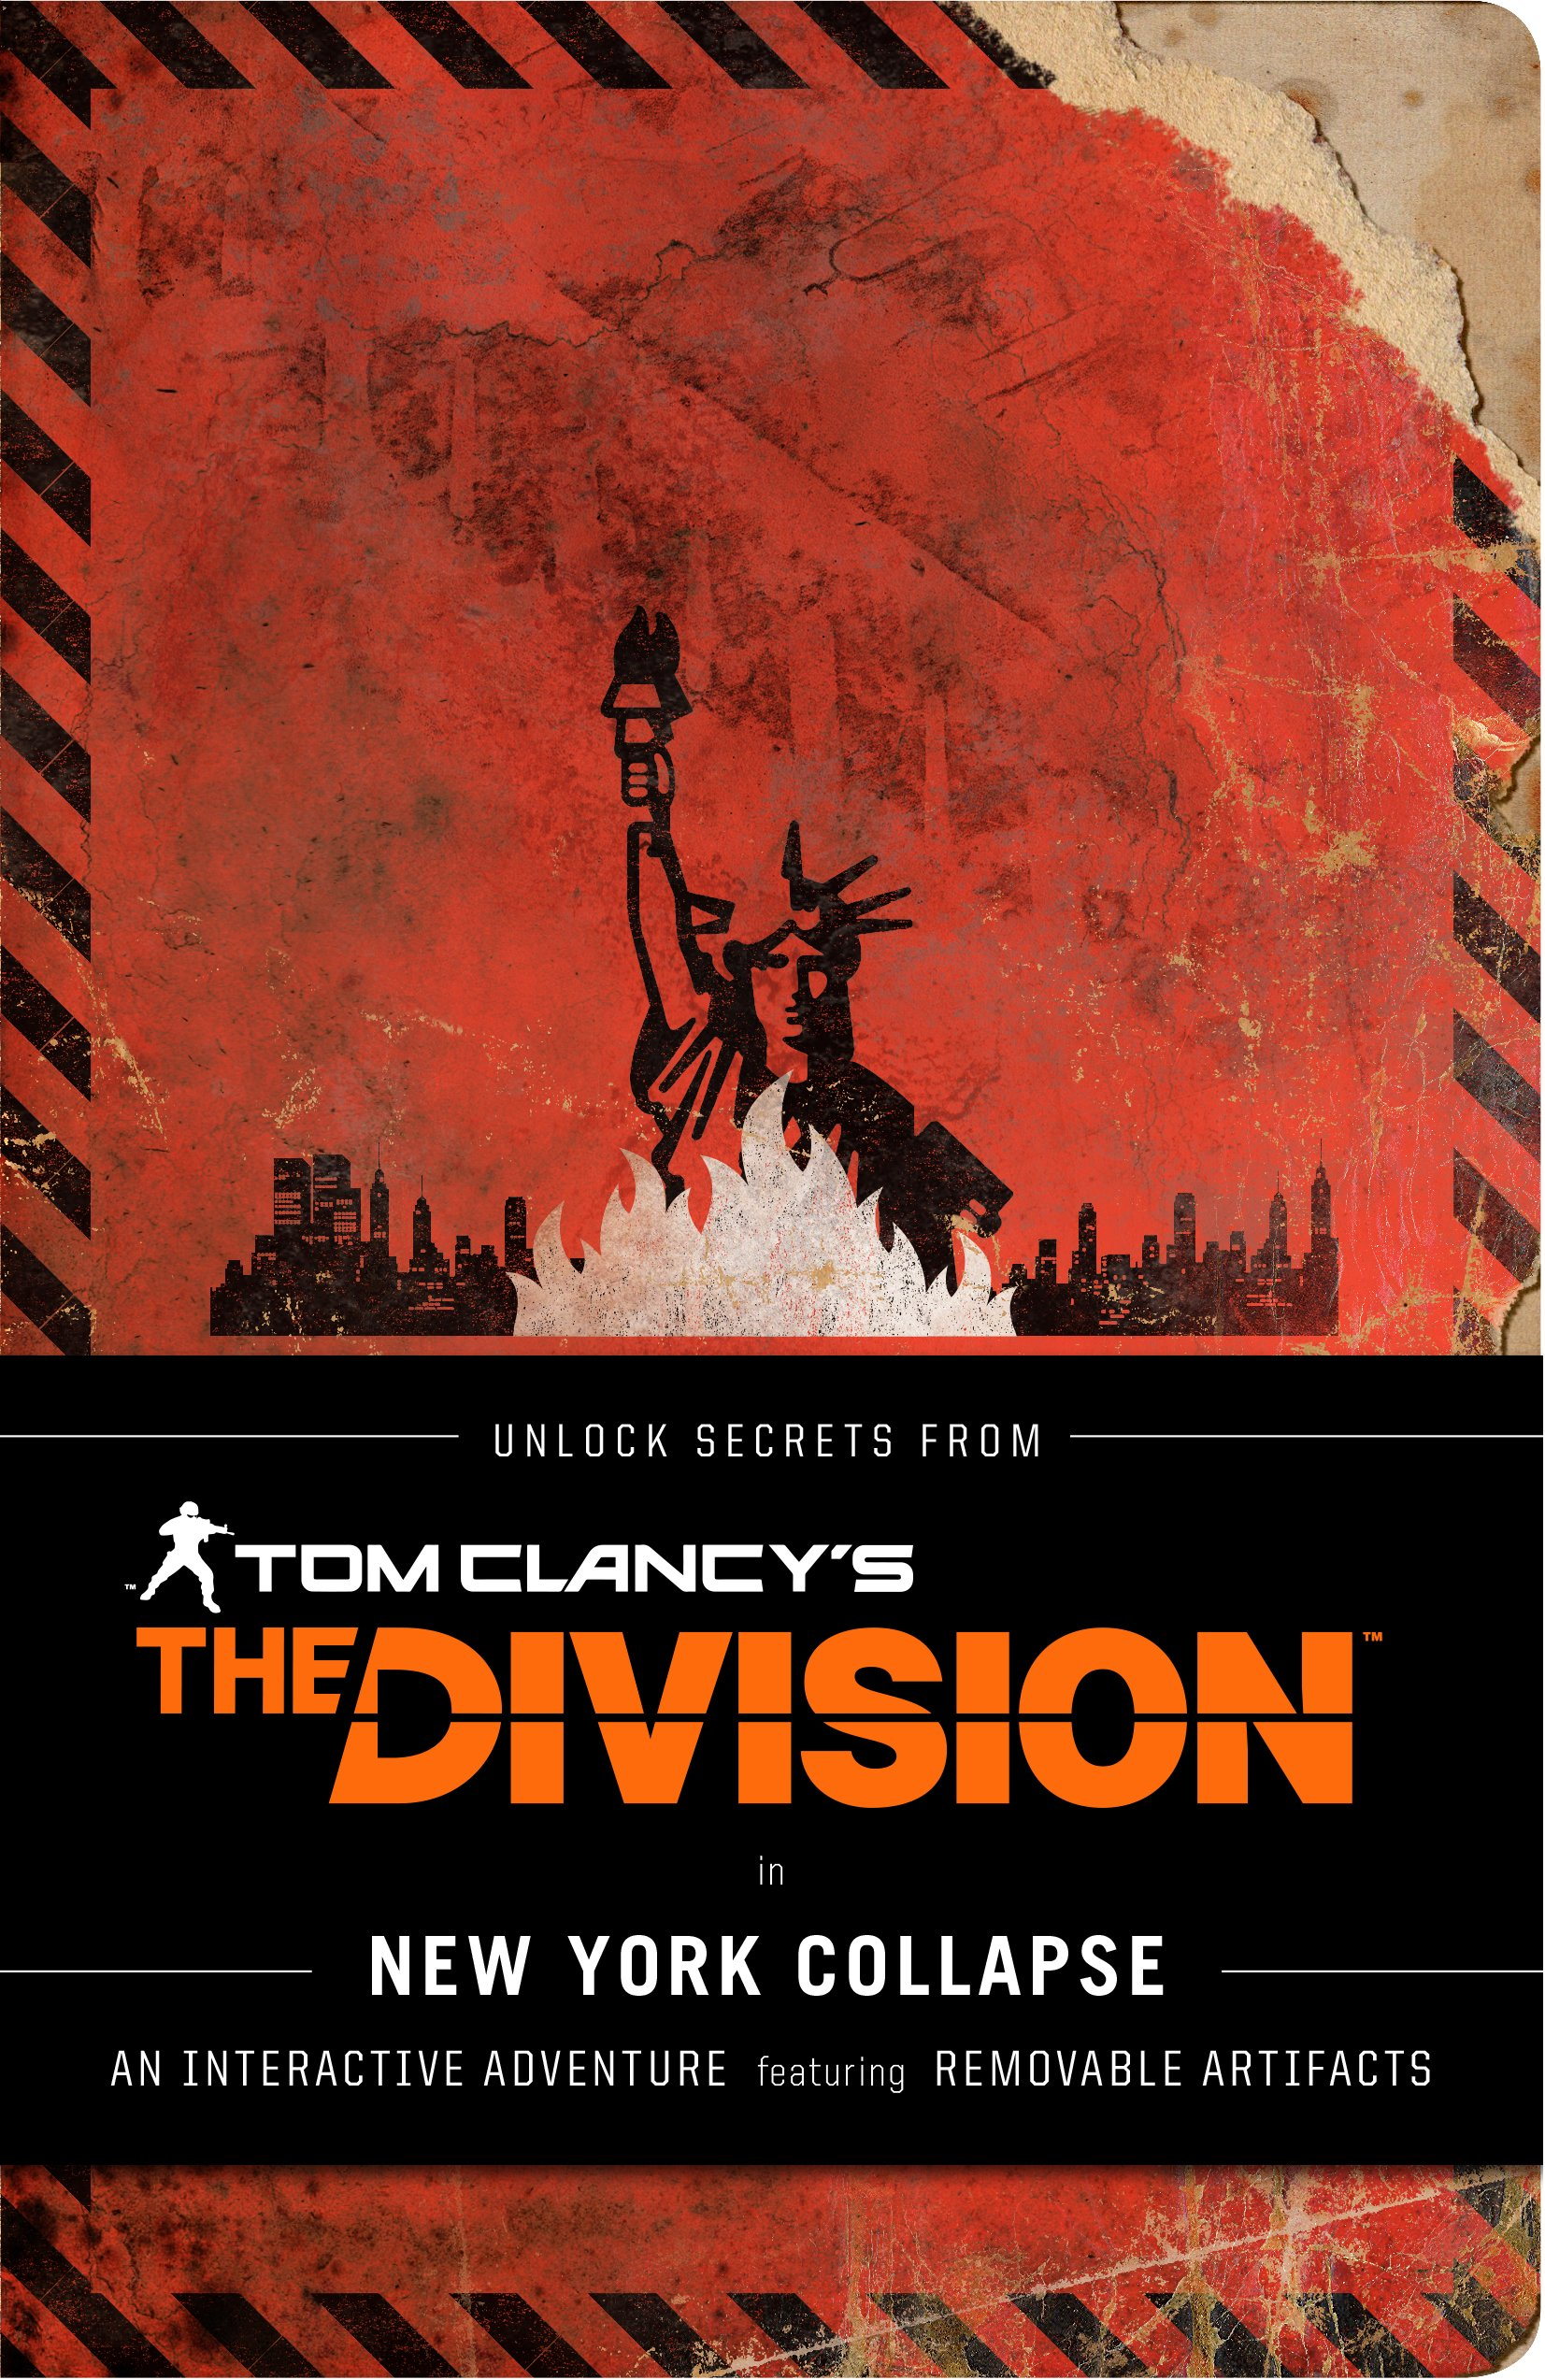 Tom Clancy's The Division New York Collapse